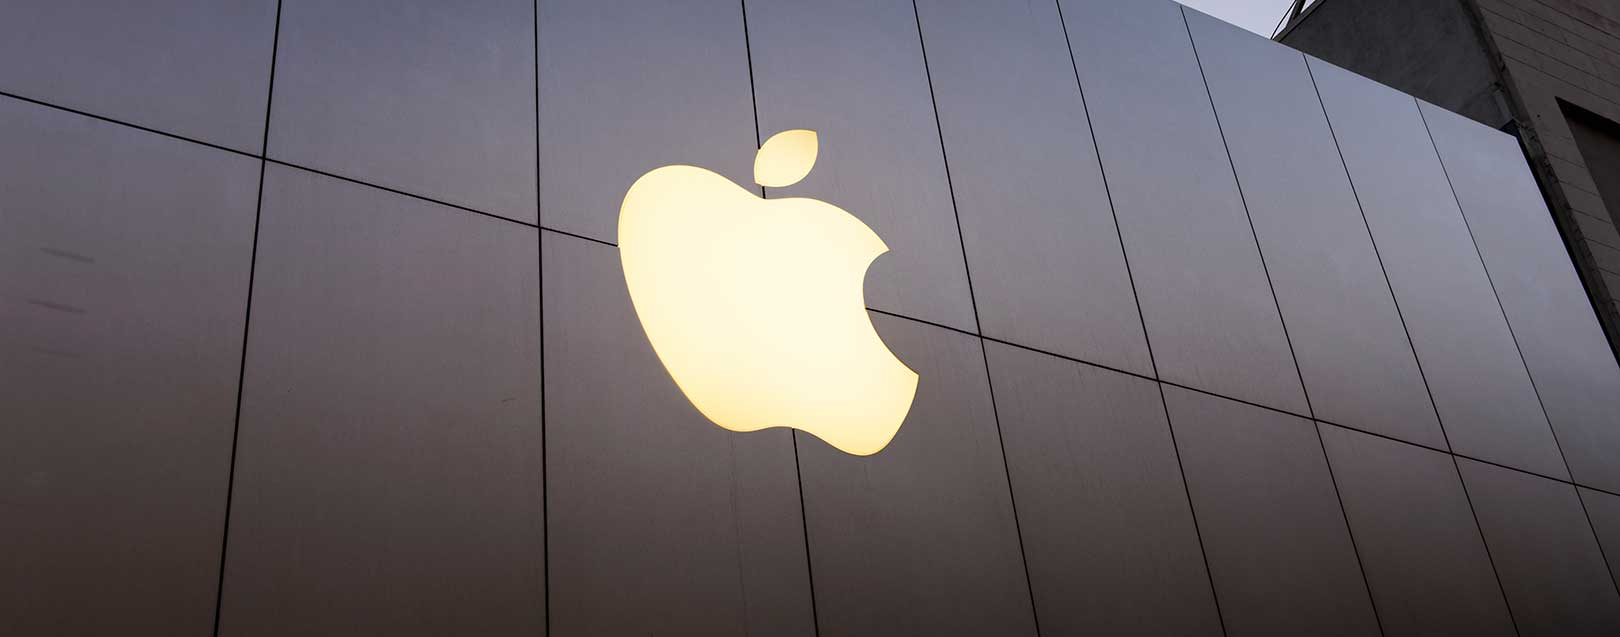 Apple optimistic of capturing the growing share of India's market